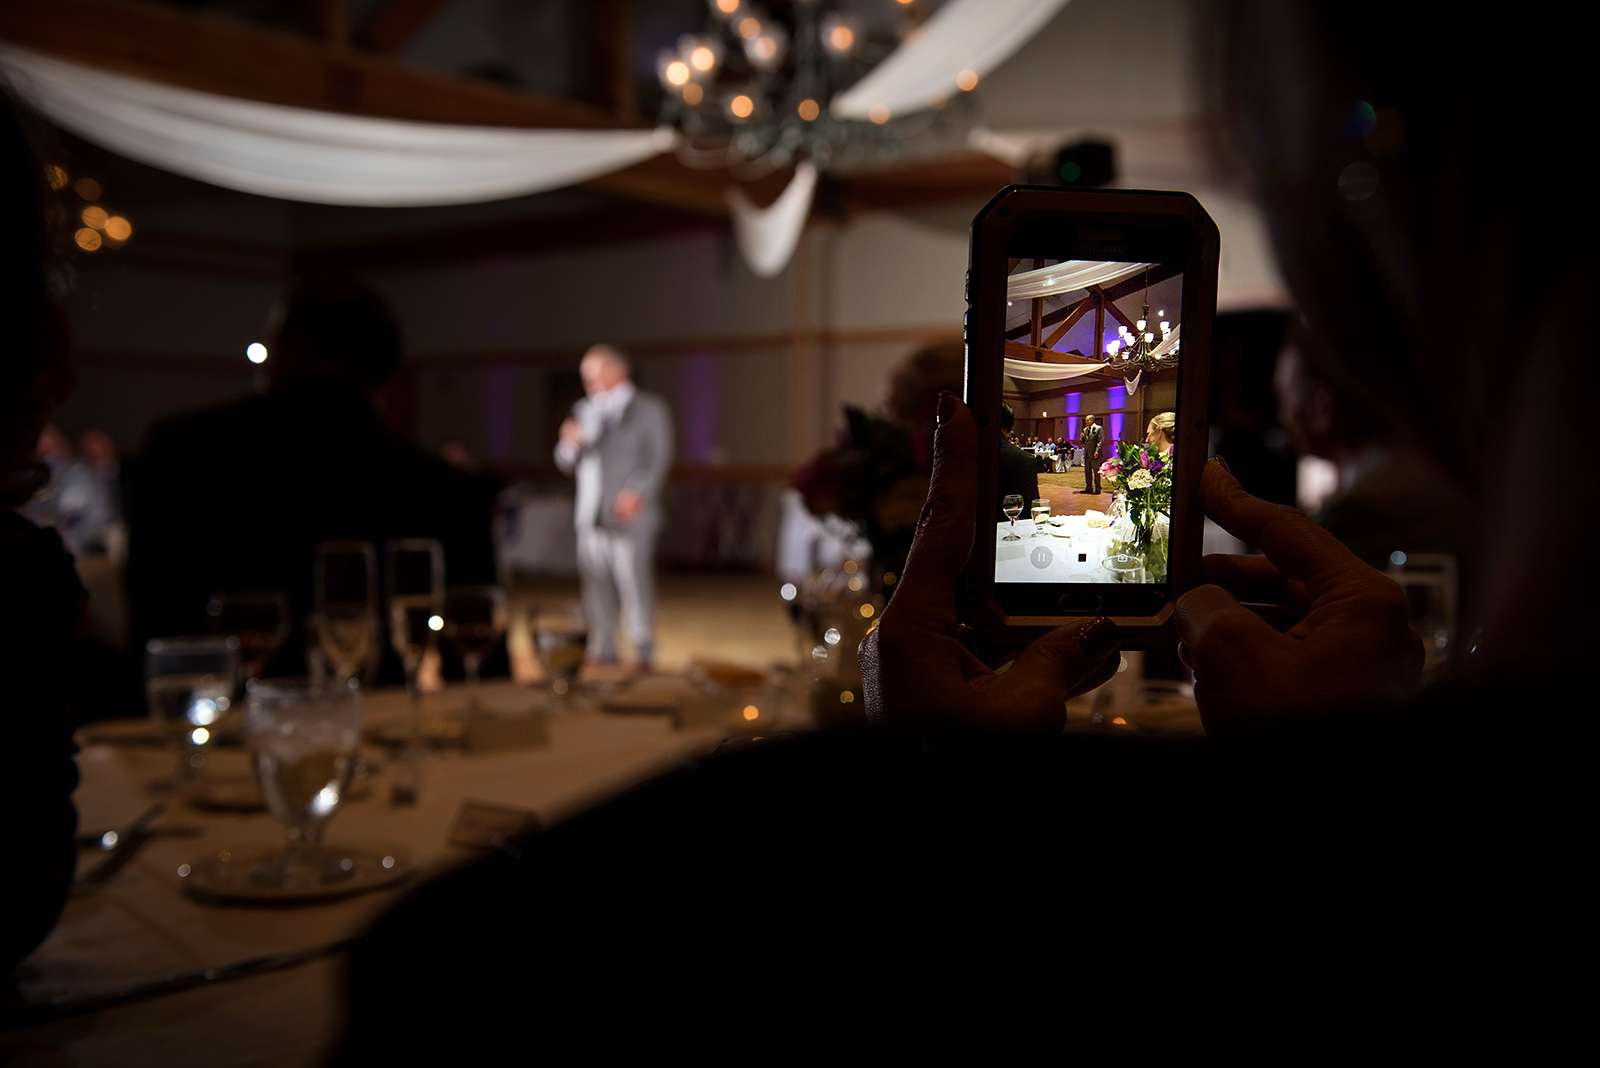 Unplugged Wedding Photo Toast Speech Cellphone